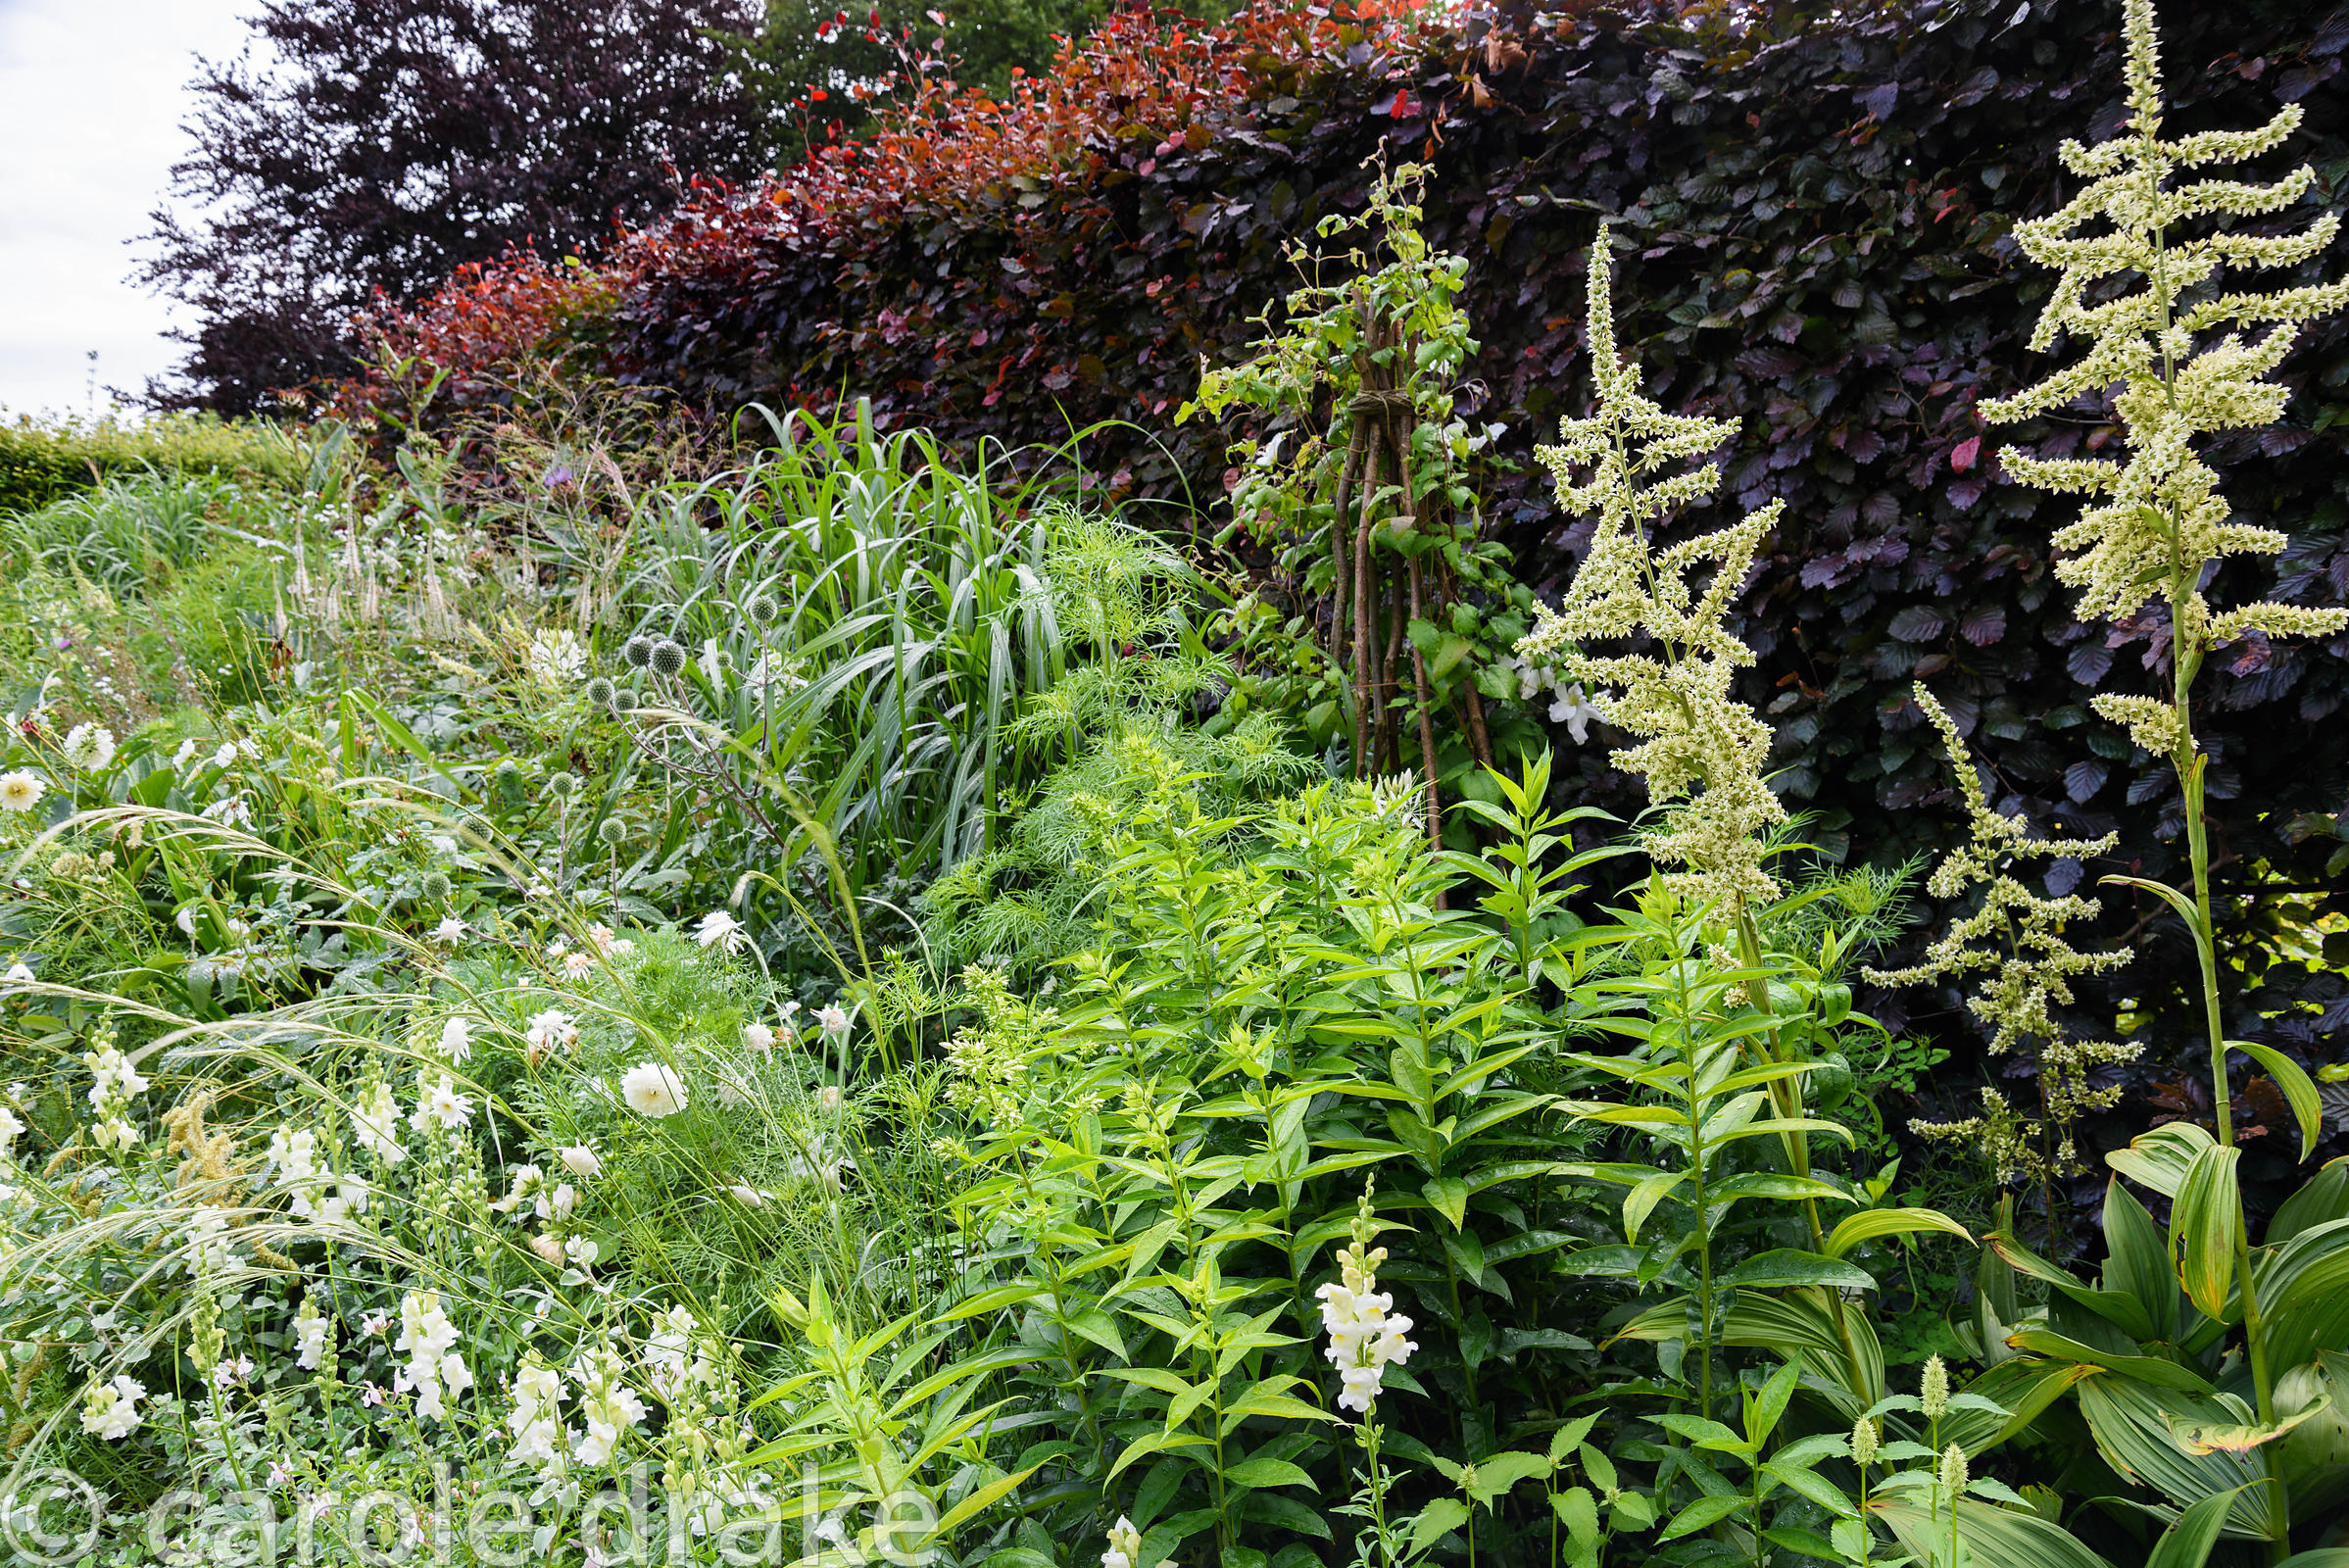 Border in the White Garden planted with Veratrum album, cosmos, anthirrhinums and echinops backed by a copper beech hedge at ...